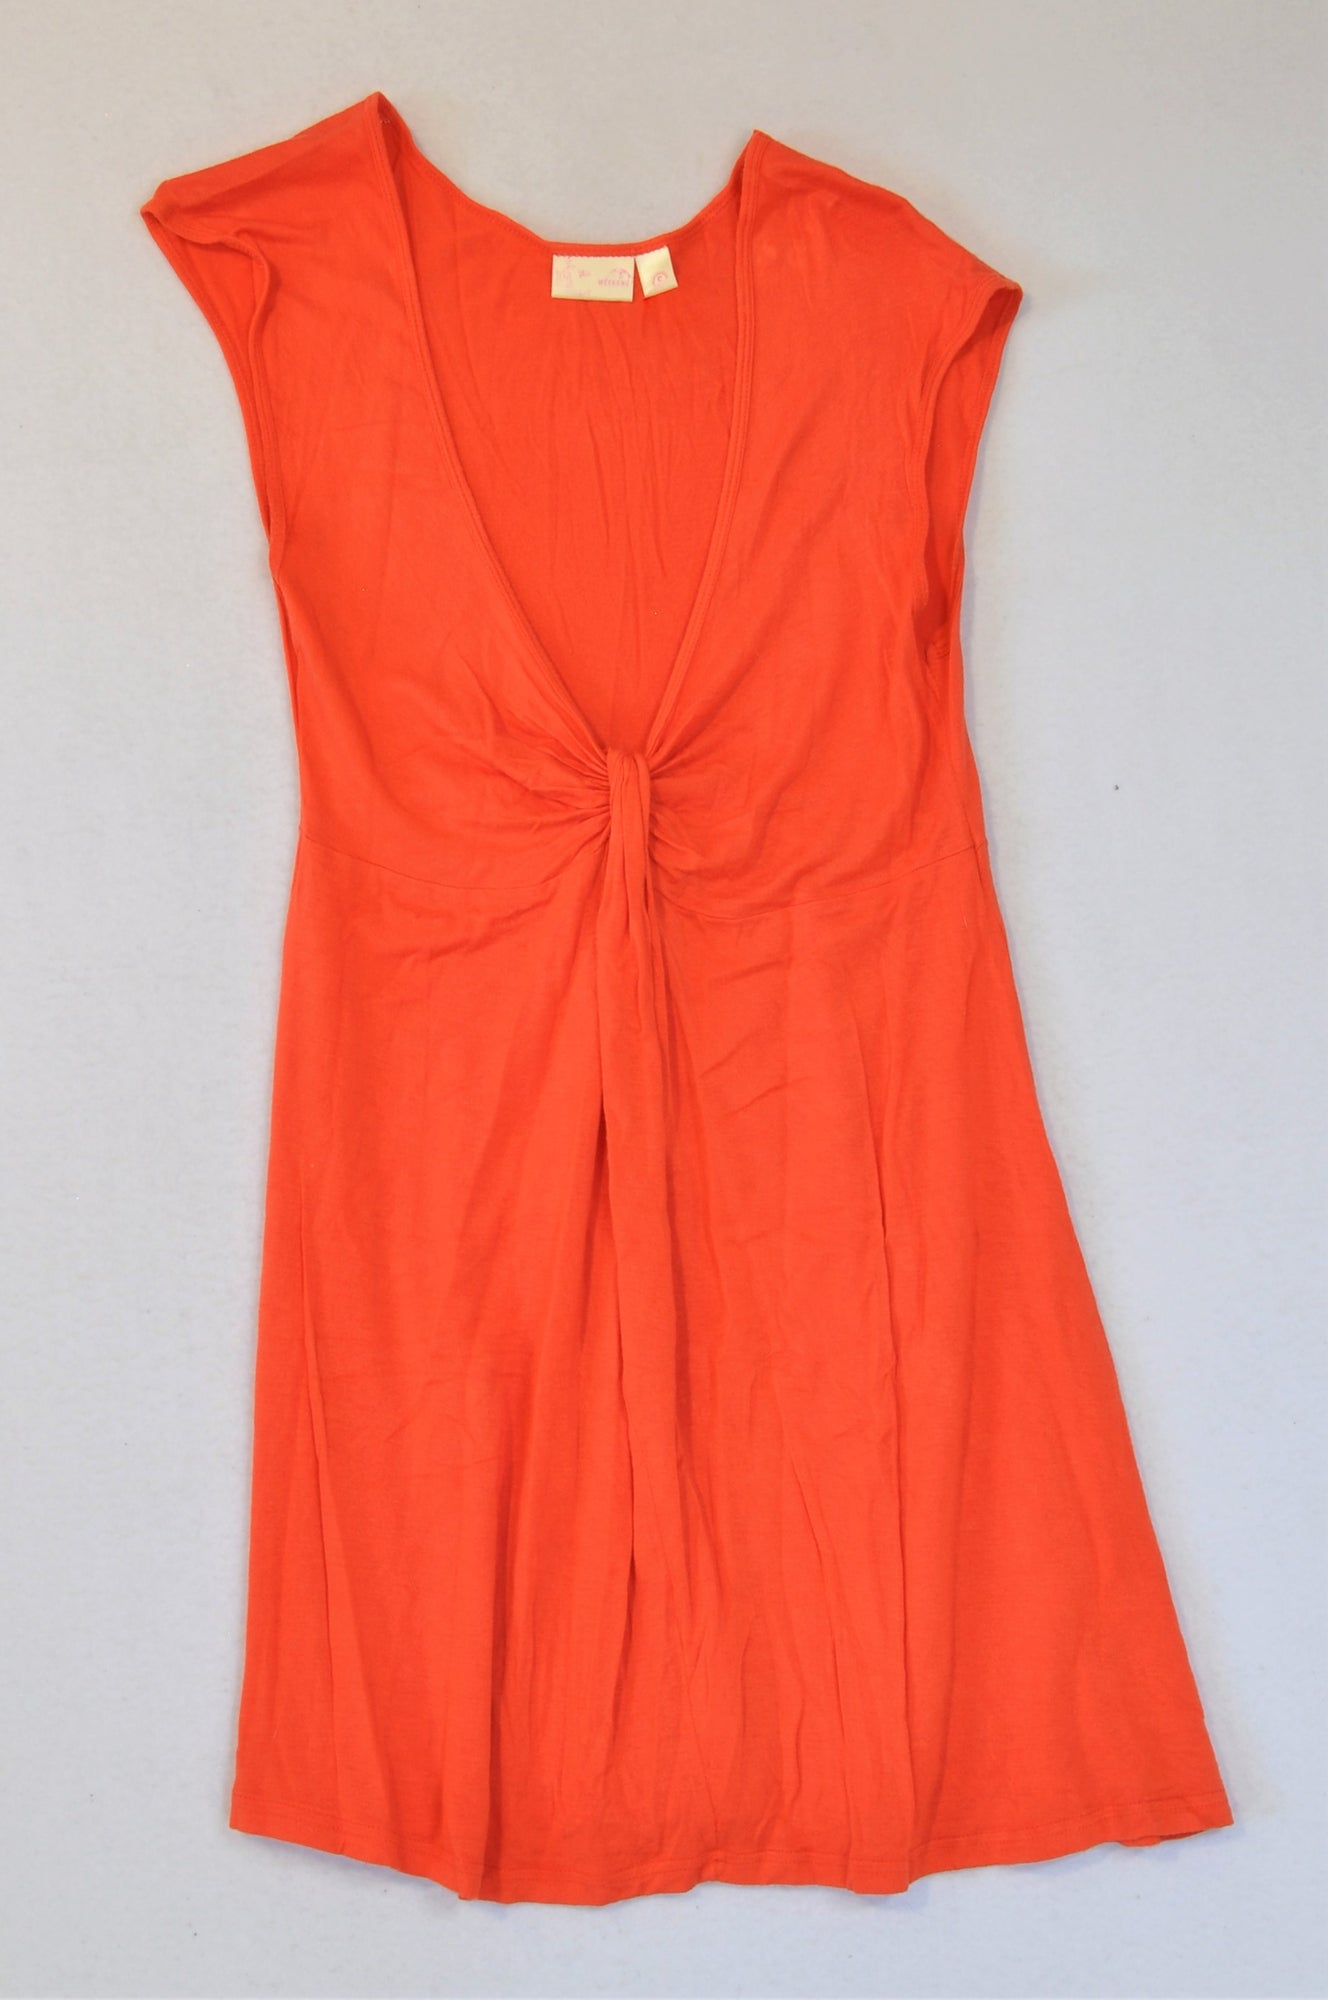 Insync Lightweight Orange Dress Women Size S